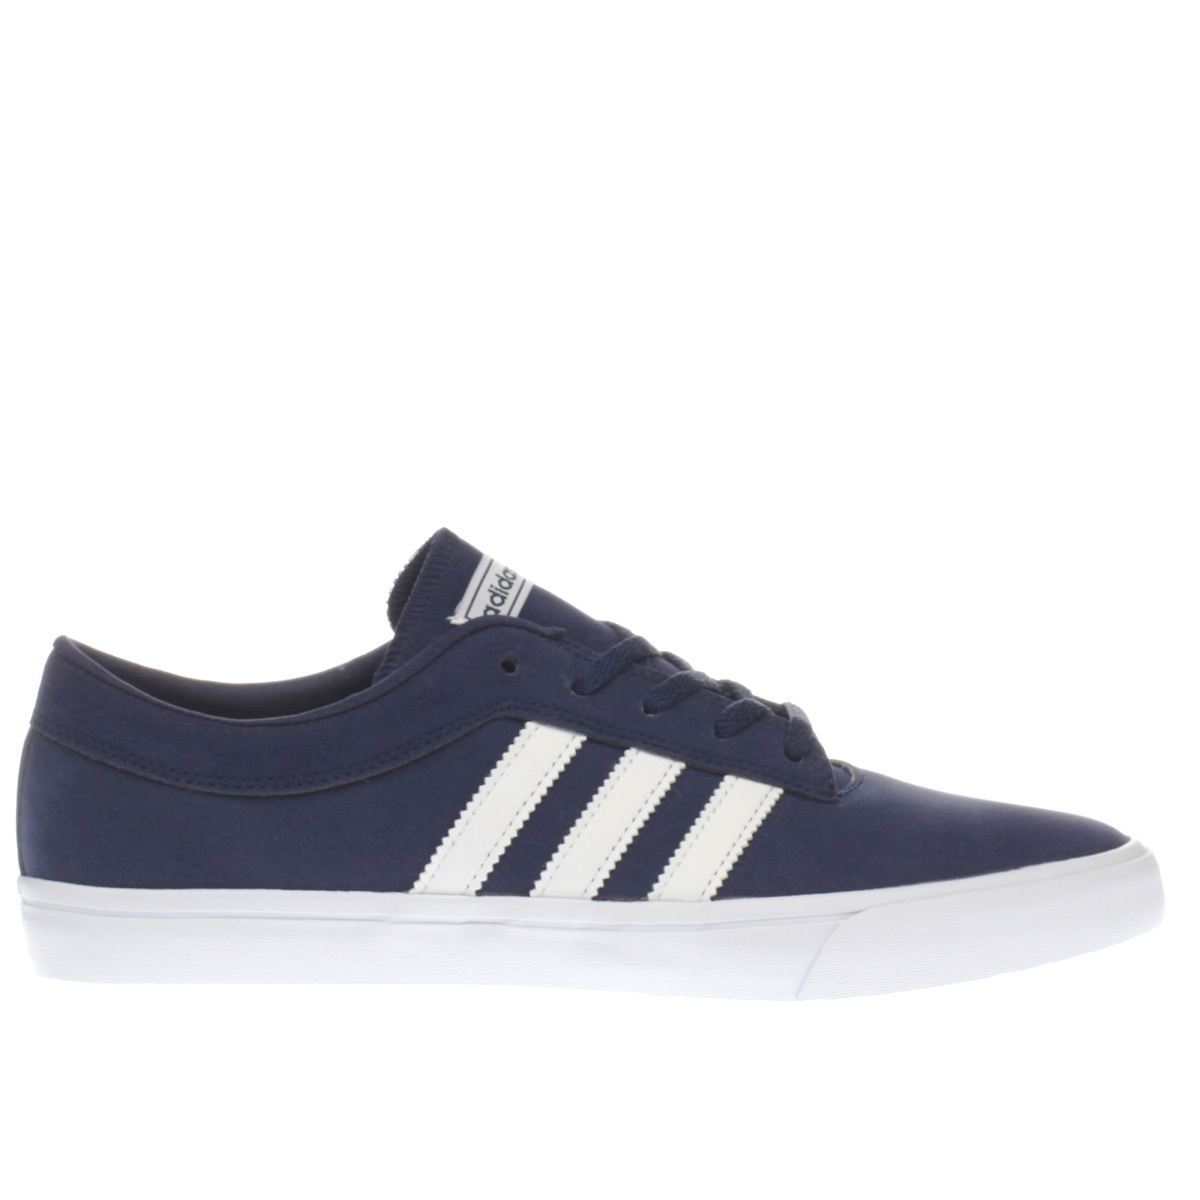 adidas navy & white sellwood trainers